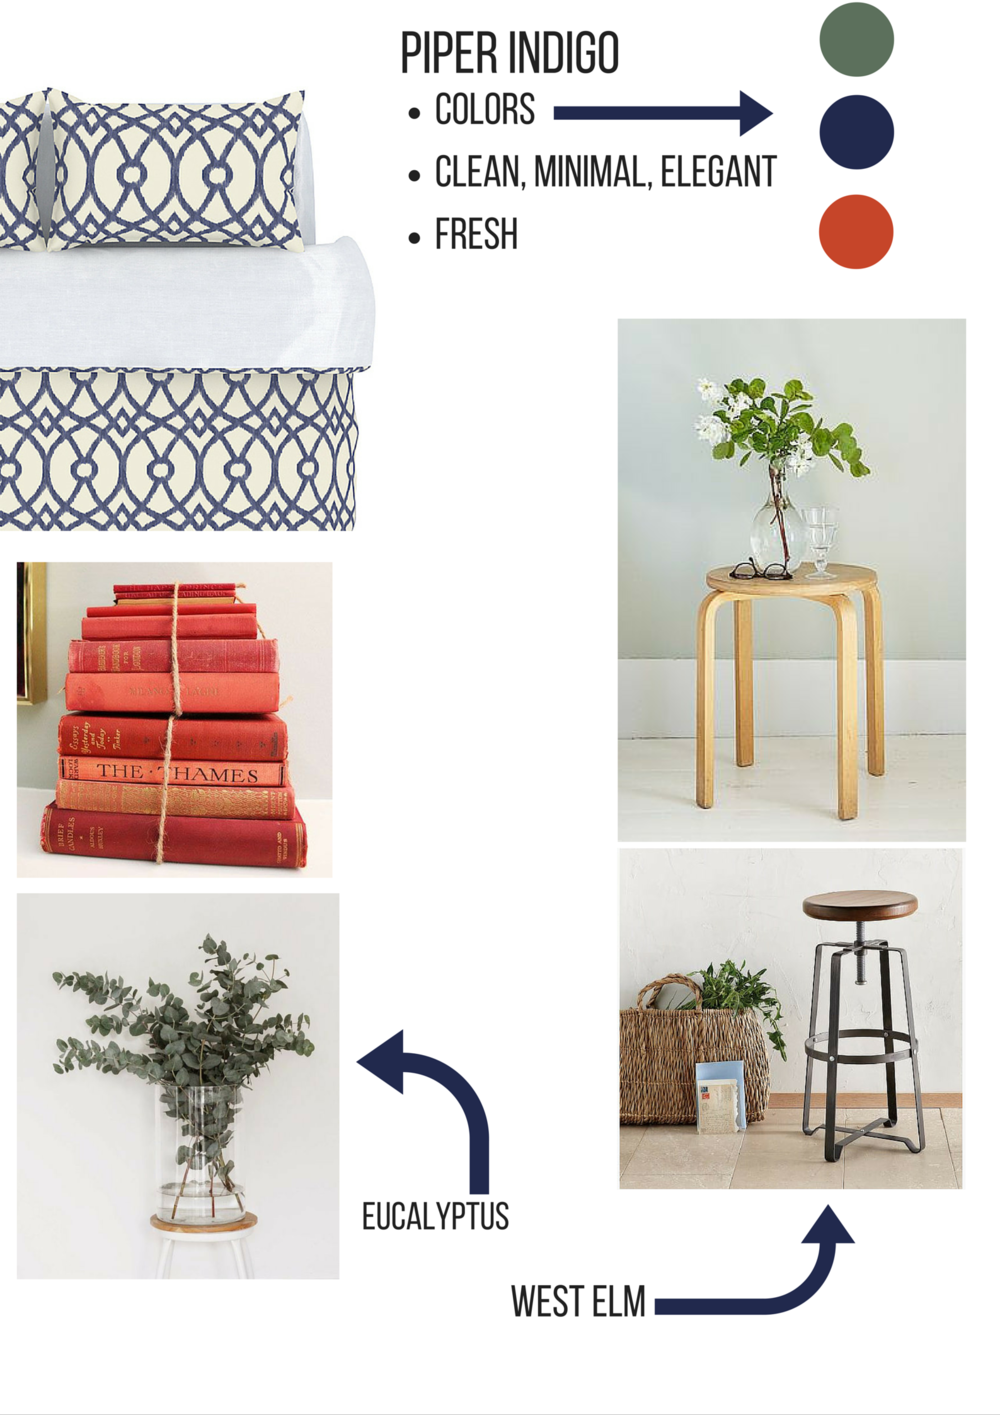 mood board for colorfly home